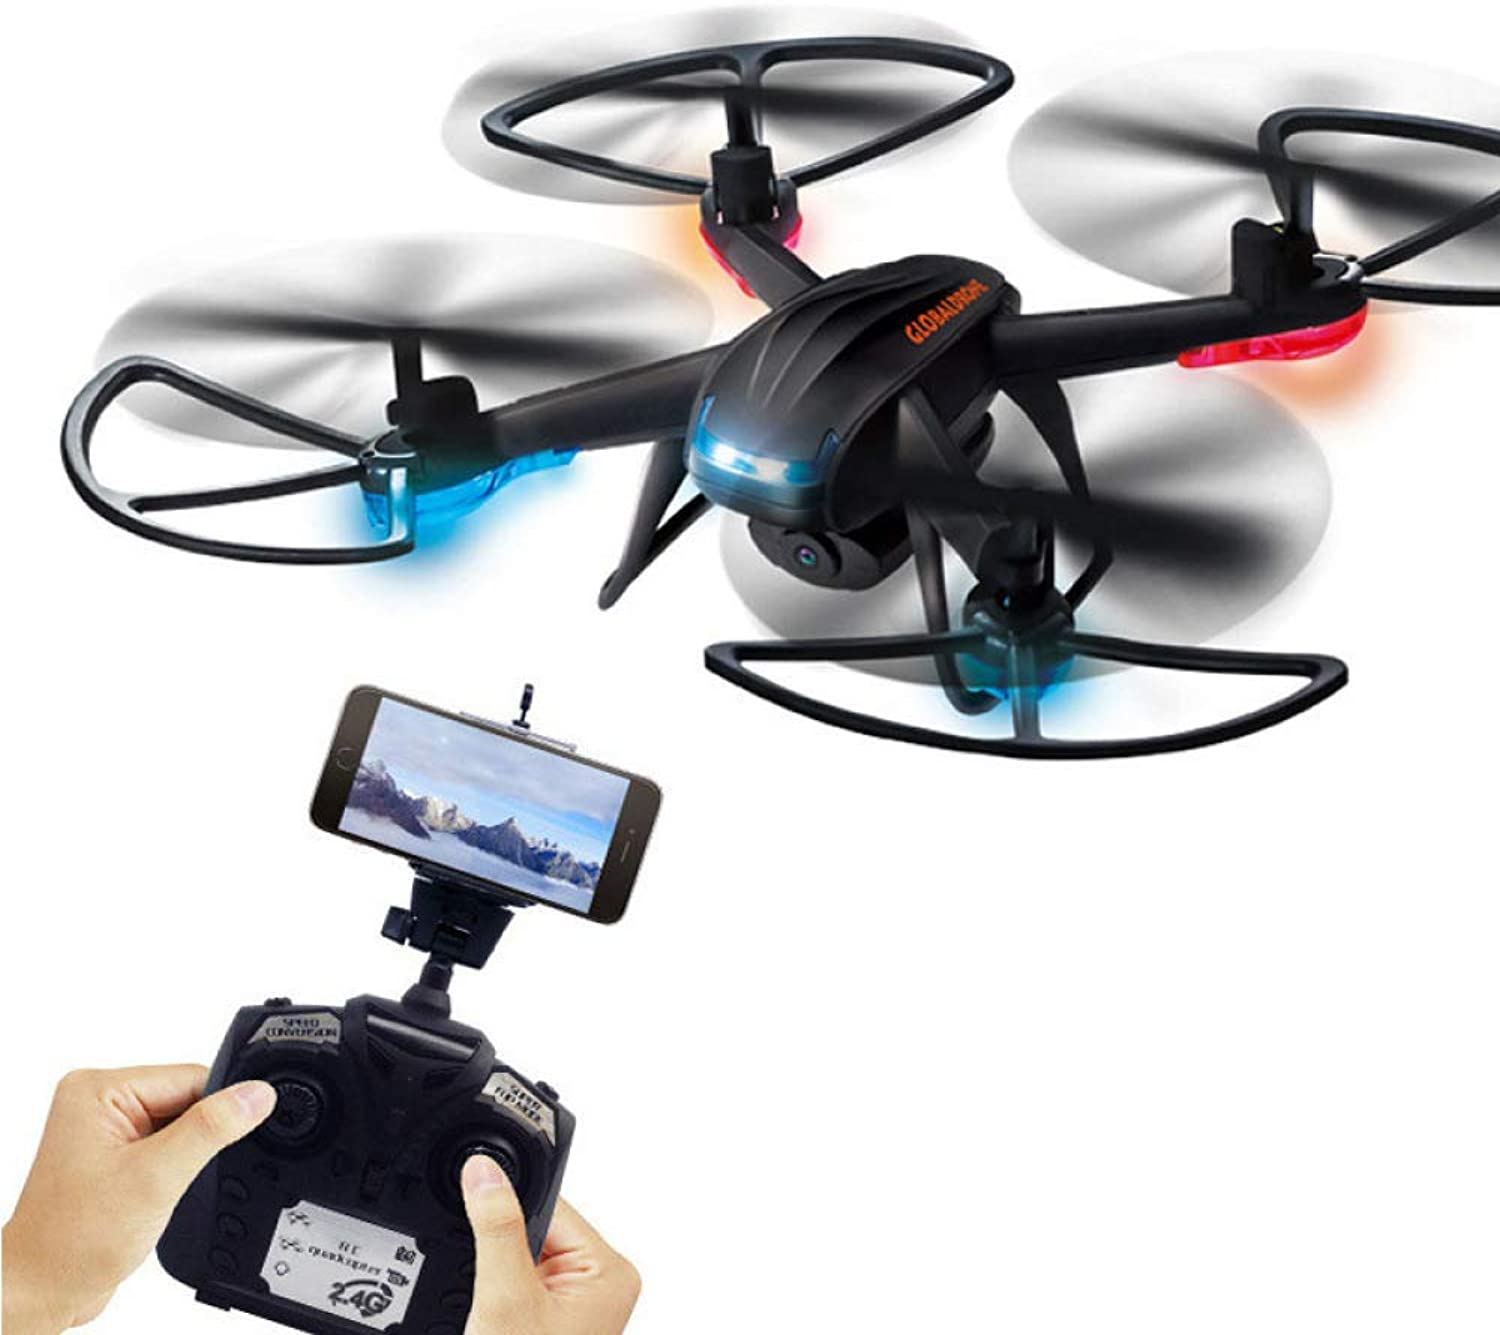 ERKEJI Drone remote Control fouraxis aircraft pneumatic fixed height toy aircraft 1080P aerial photo WIFI FPV VR